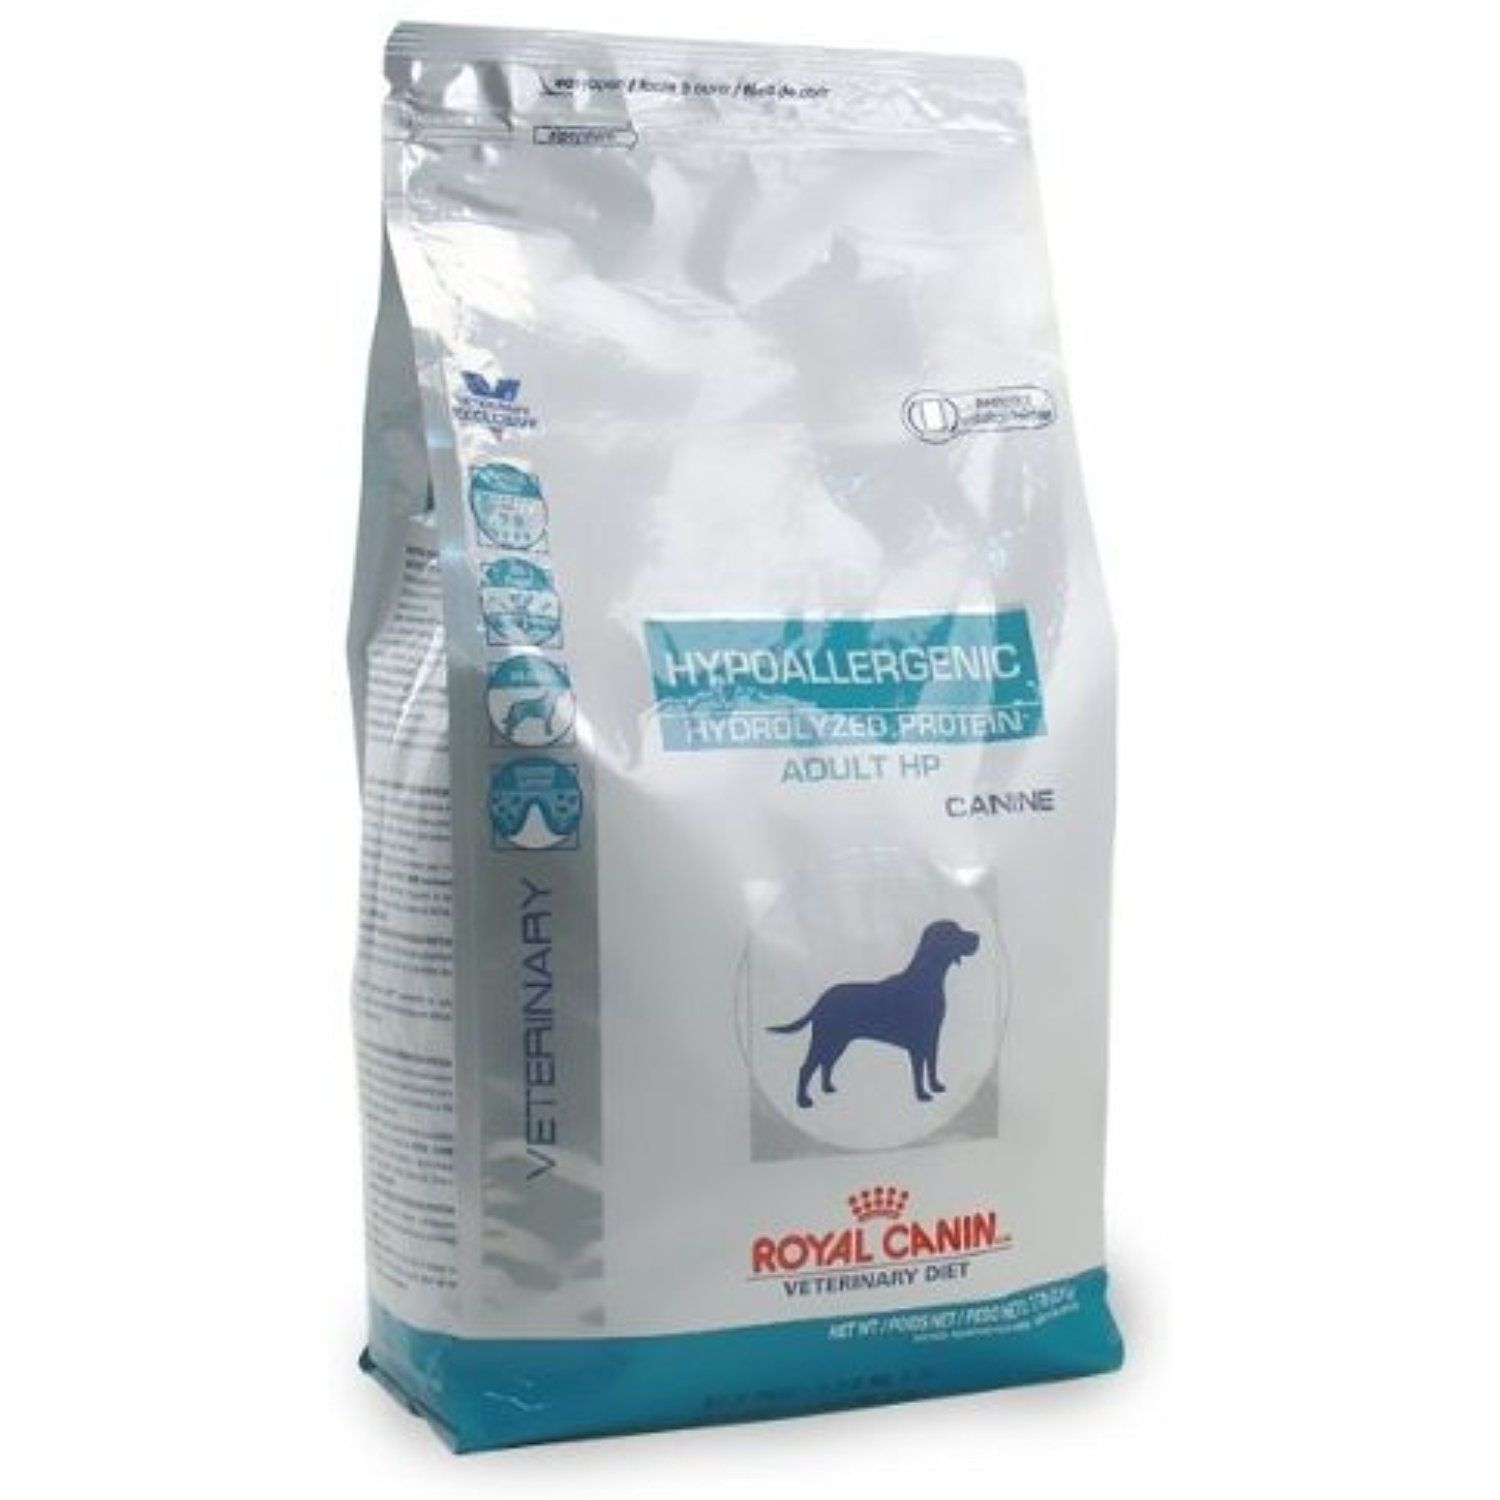 Royal Canin Hp Hypoallergenic Dog Food 25 3 Lb You Can Click Image To Review More Details This Is Hypoallergenic Dog Food Dog Food Recipes Dry Dog Food